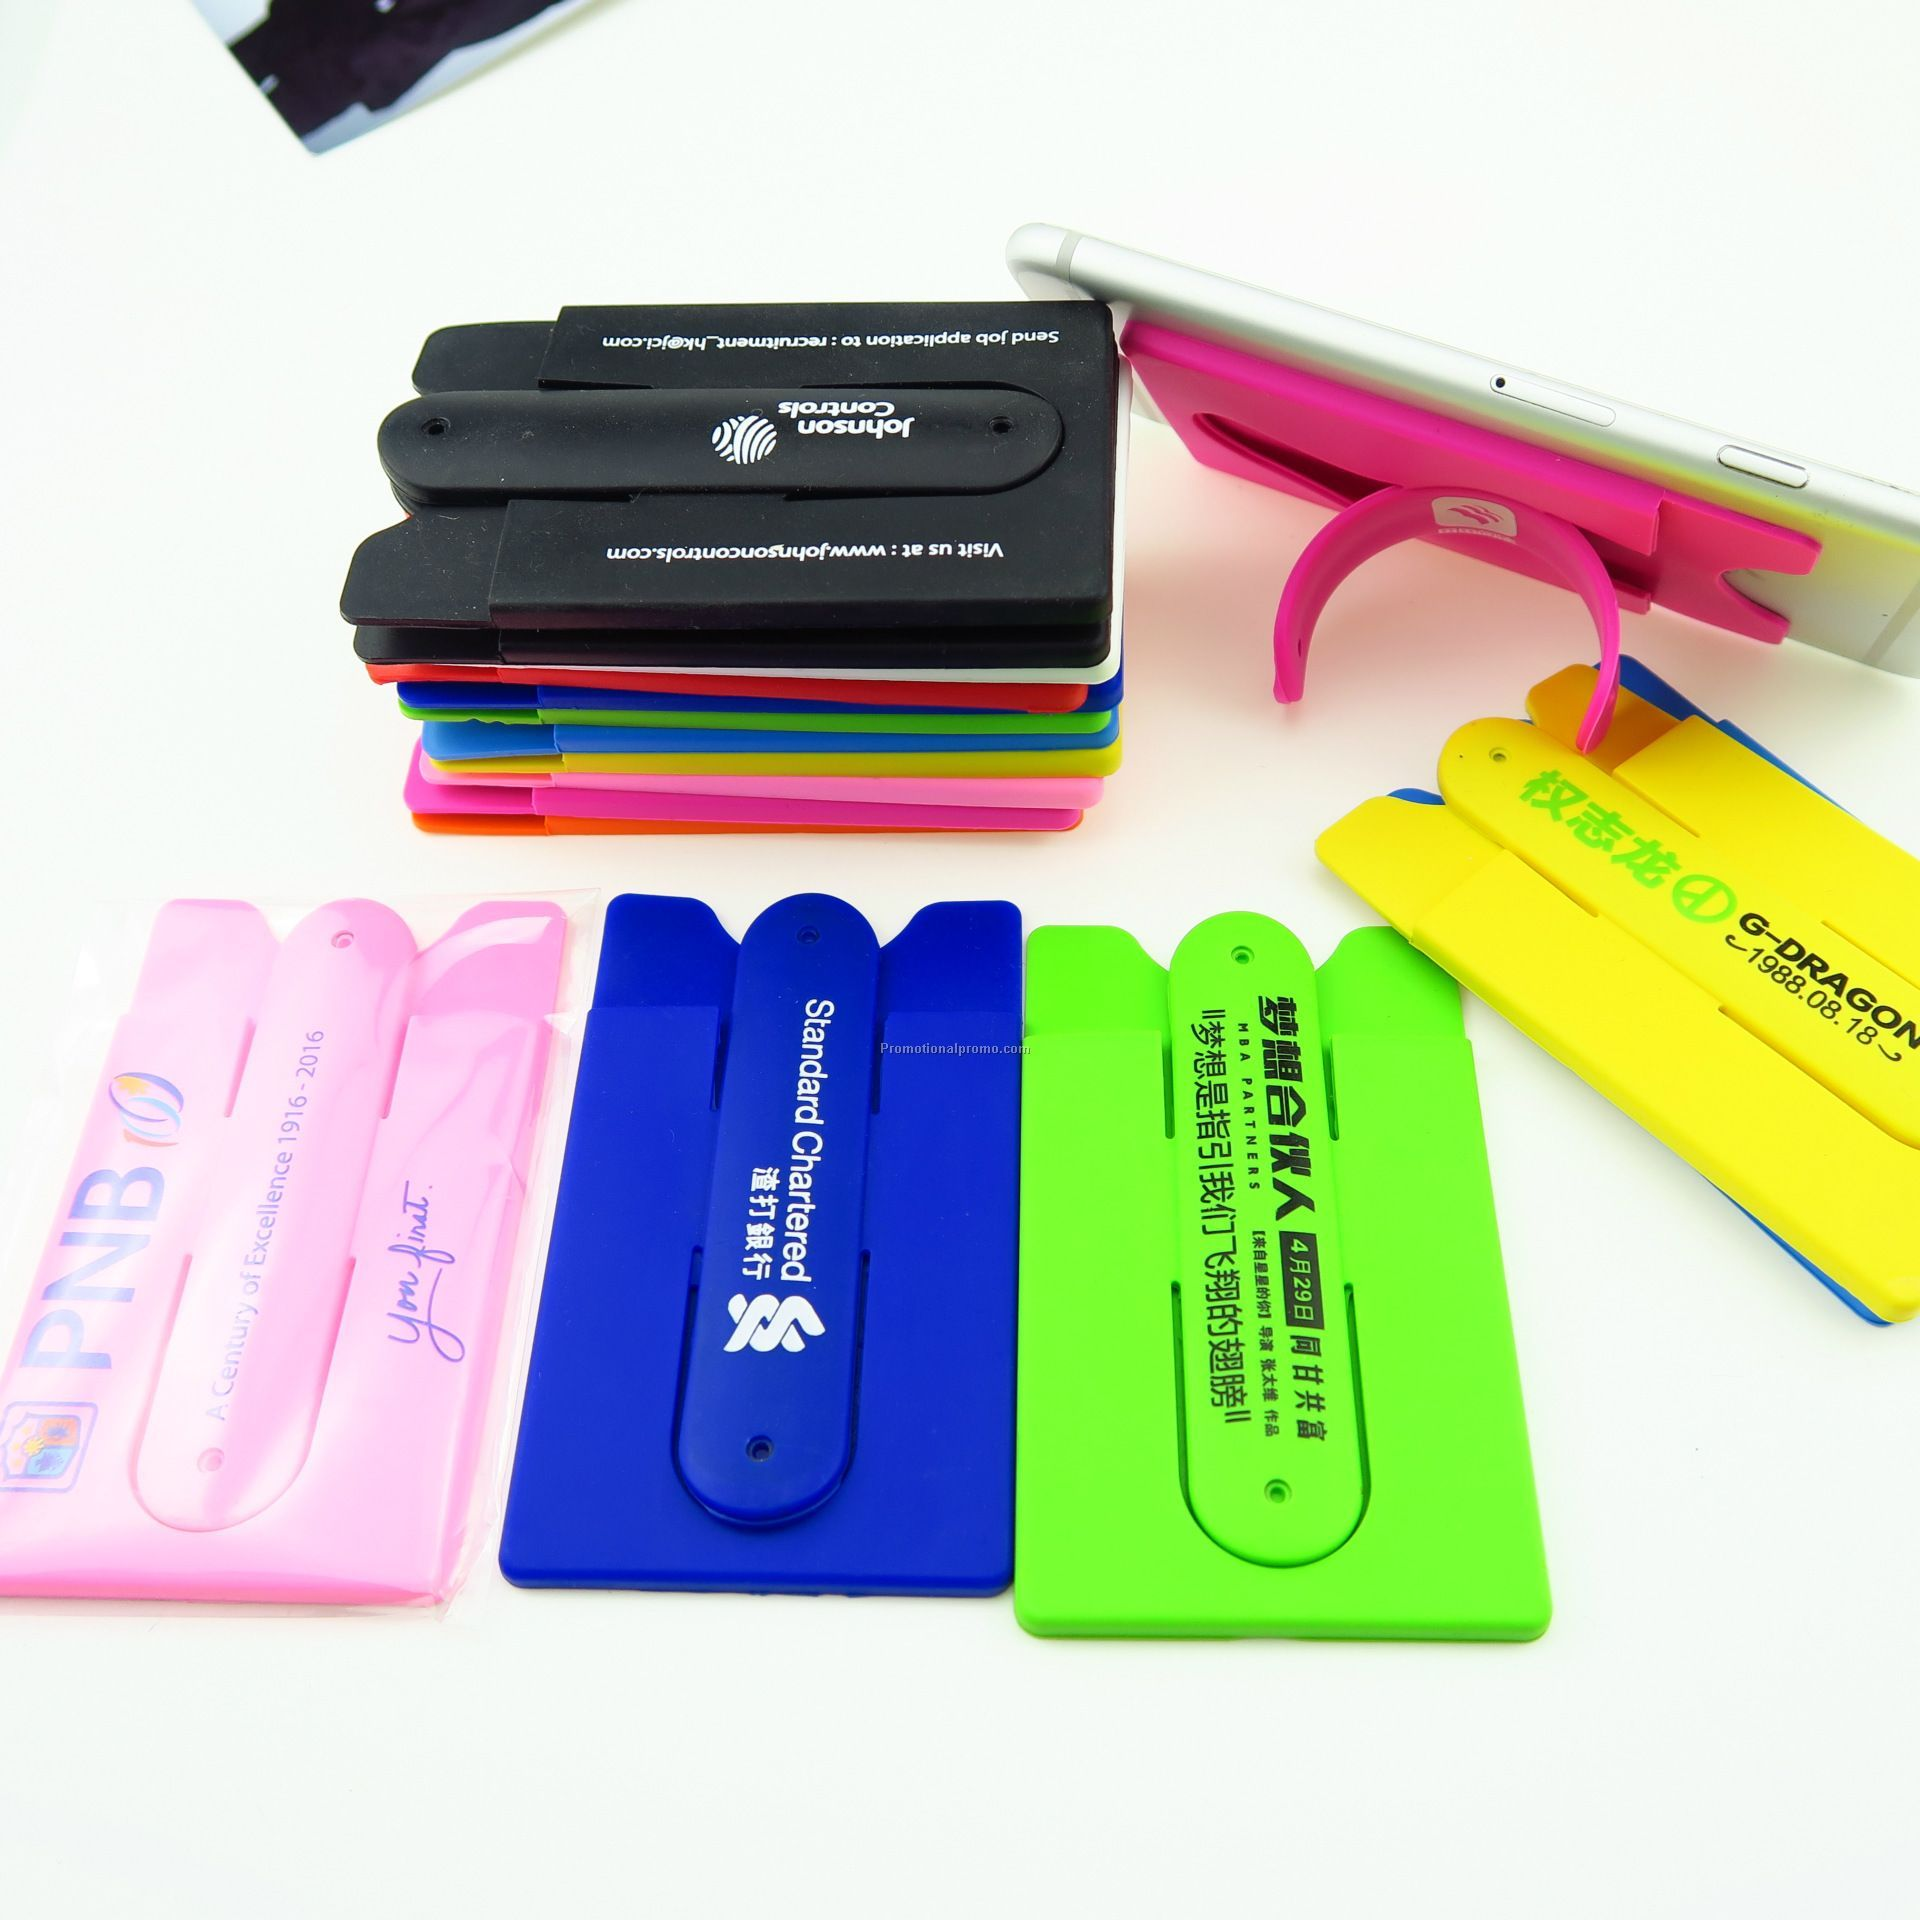 Multi-function phone card holder bracket